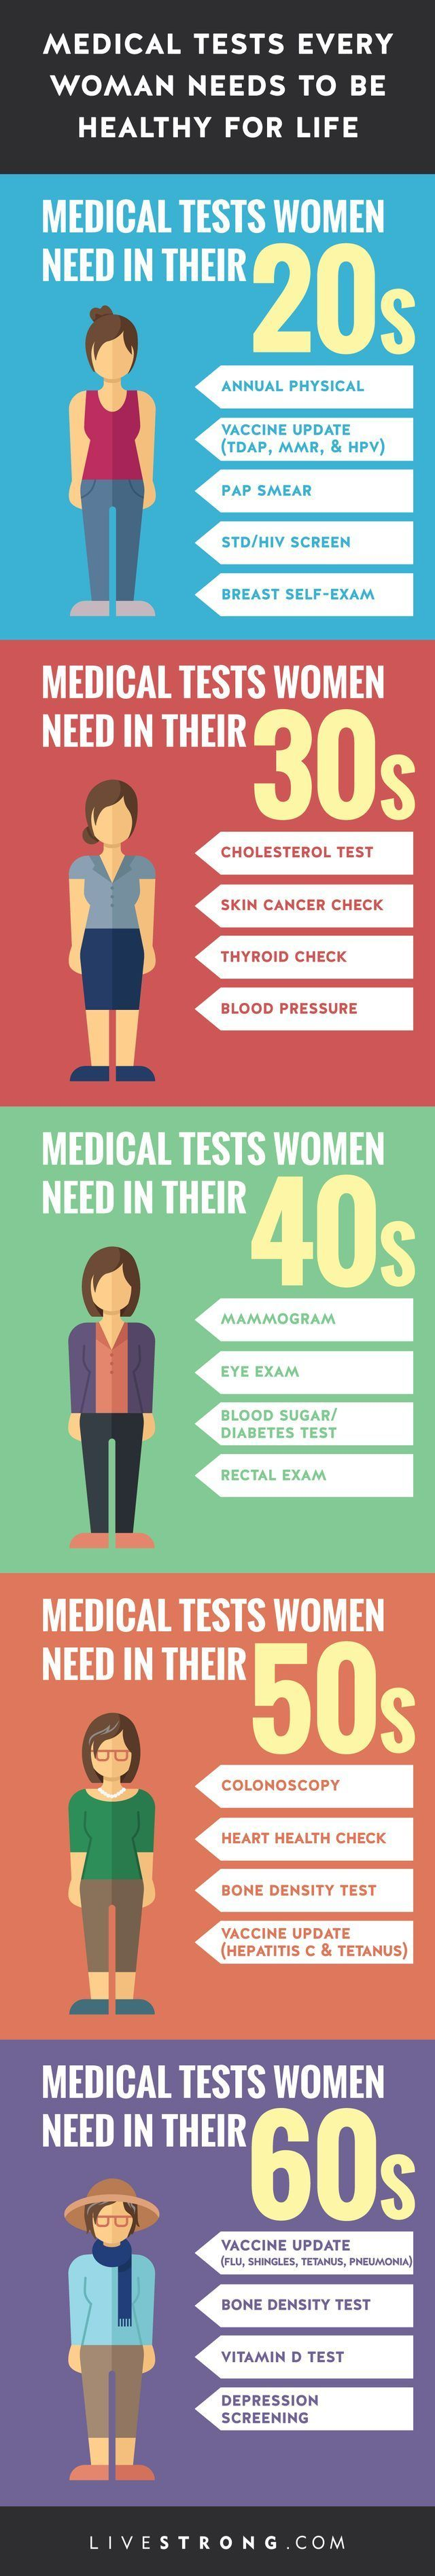 Medical Tests Every Woman Needs to Be Healthy for Life